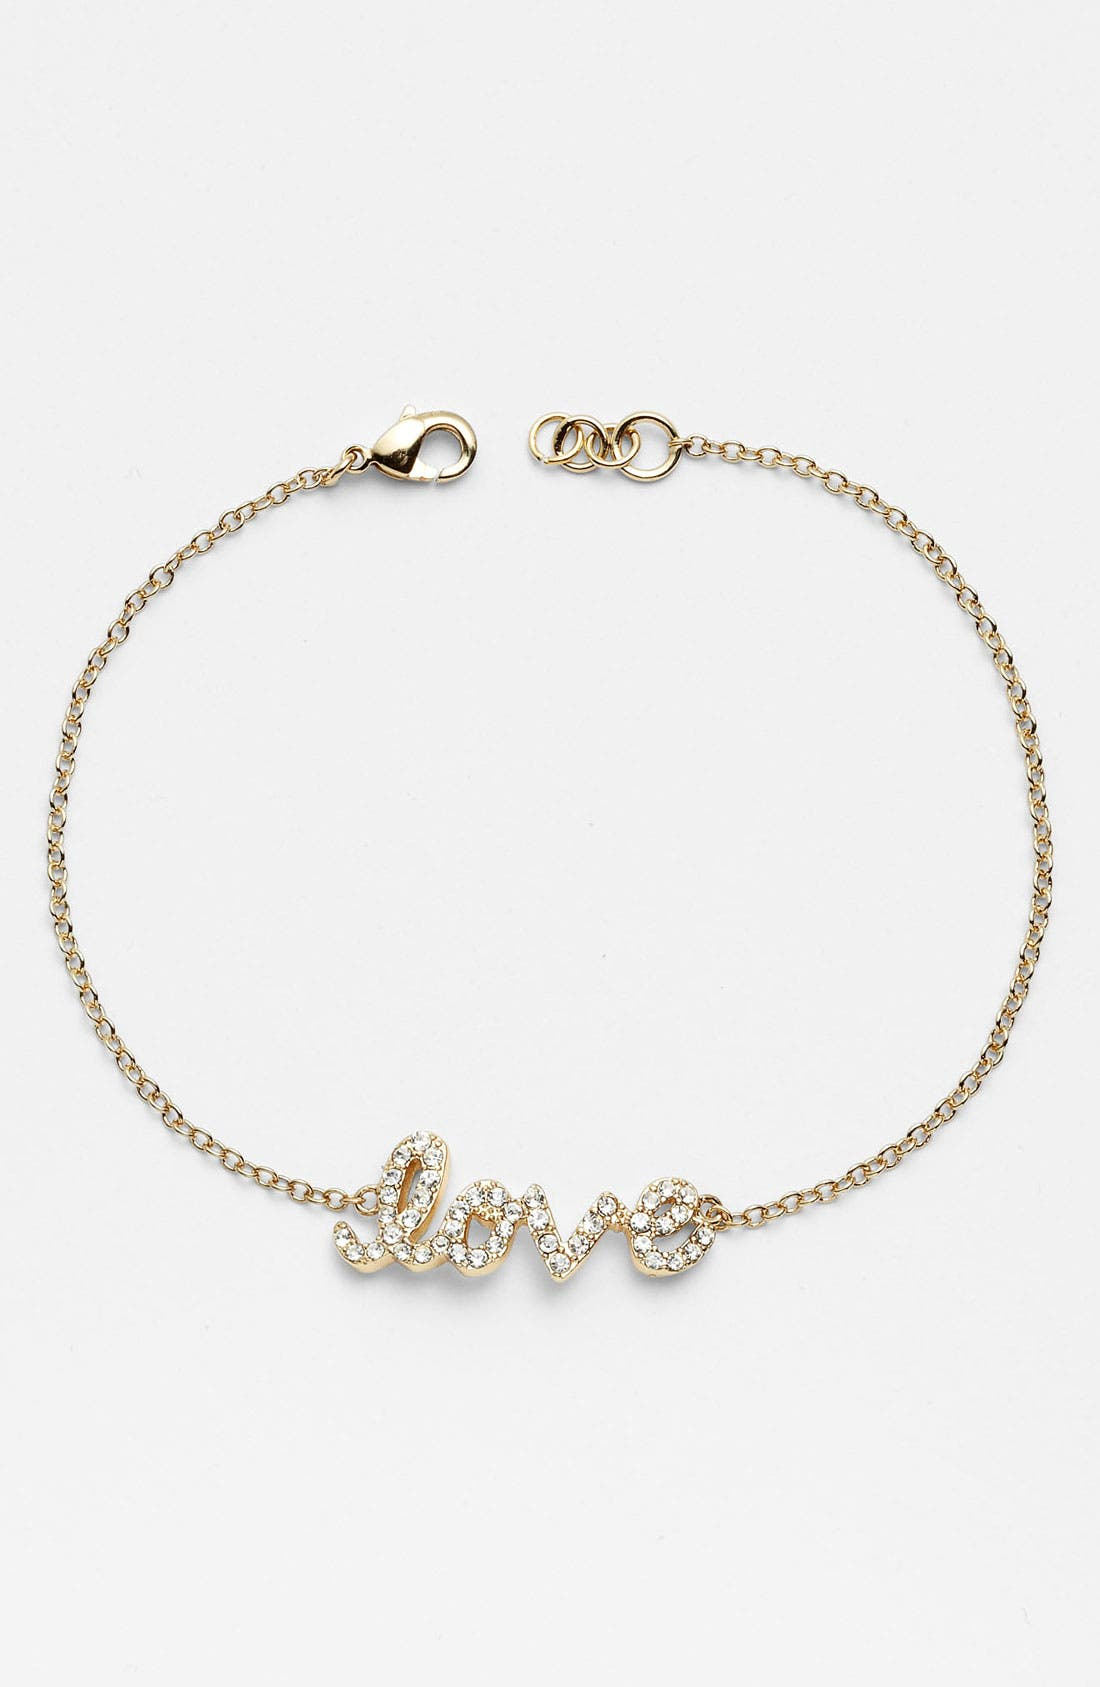 Main Image - Ariella Collection 'Messages - Love' Script Station Bracelet